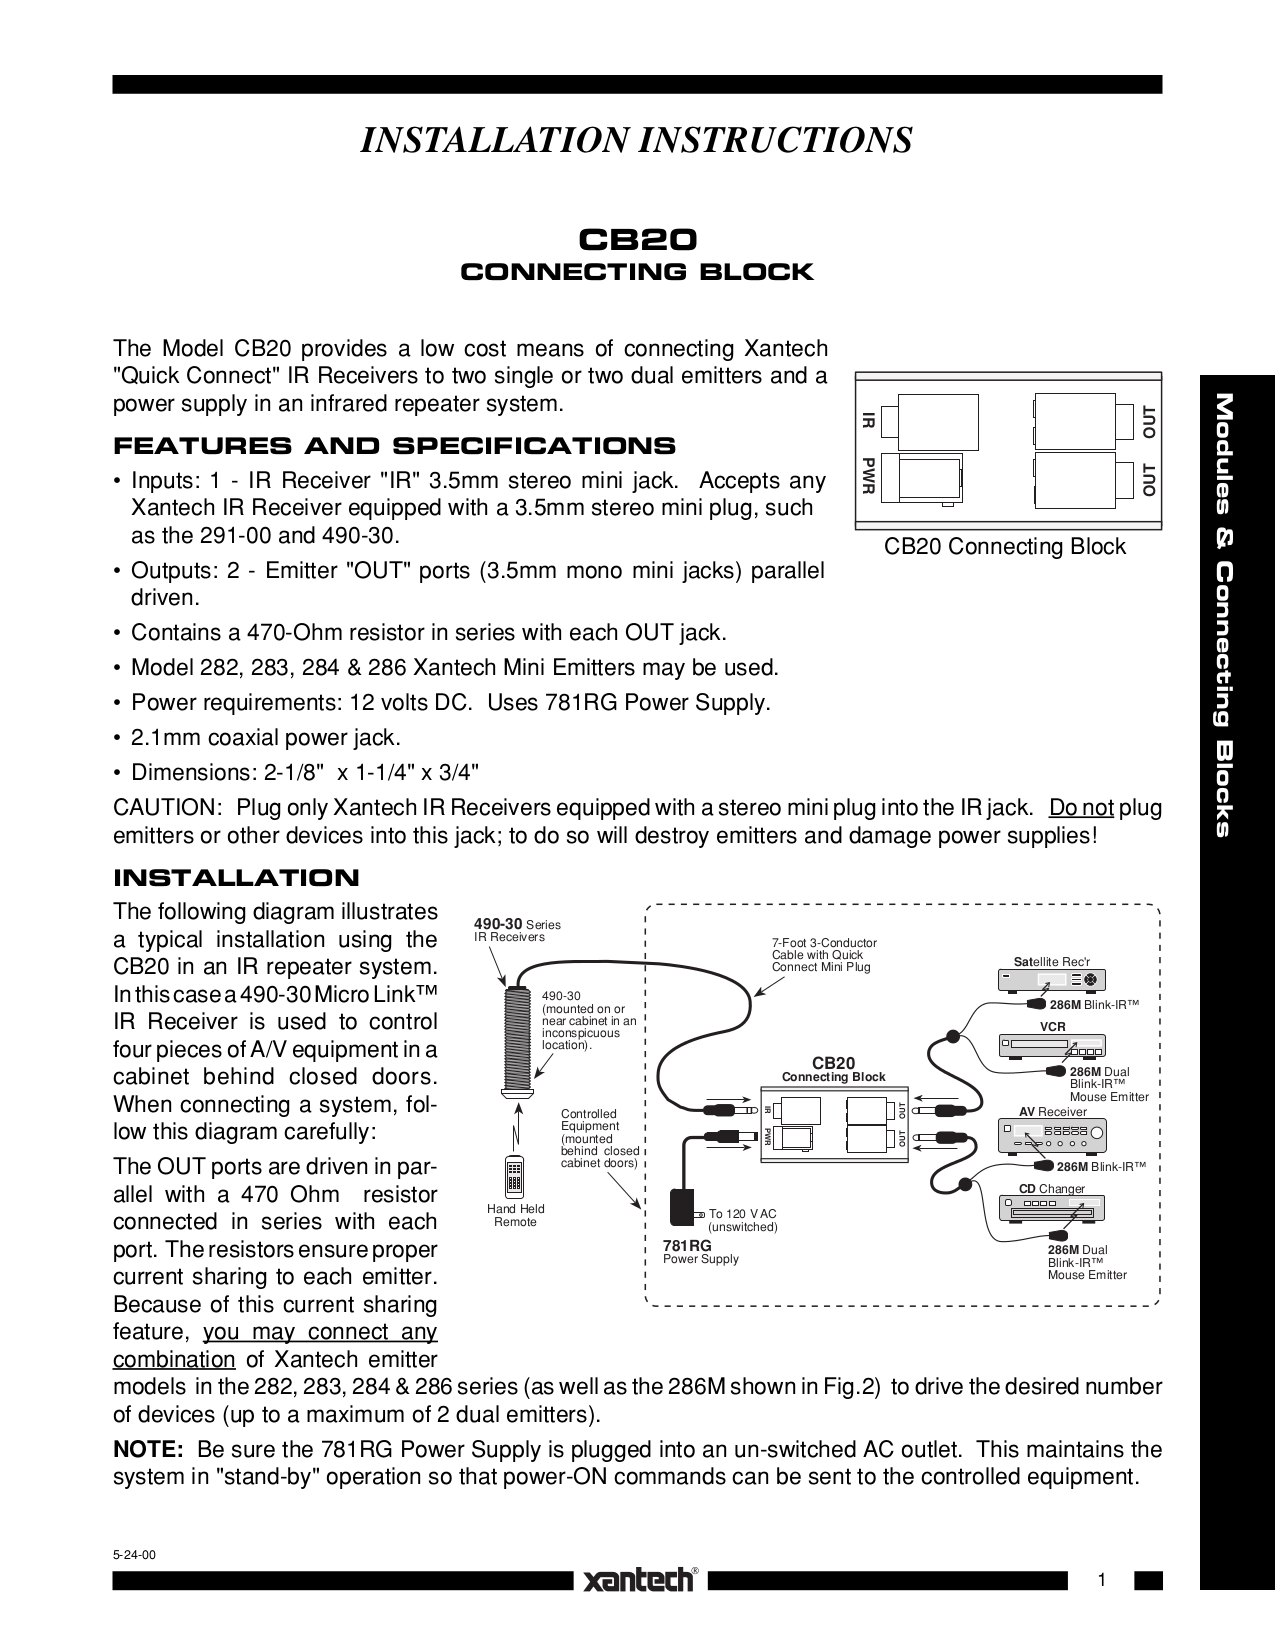 104_CB20.pdf 0 download free pdf for xantech 291 00 kit ir repeater system other xantech 789-44 wiring diagram at suagrazia.org